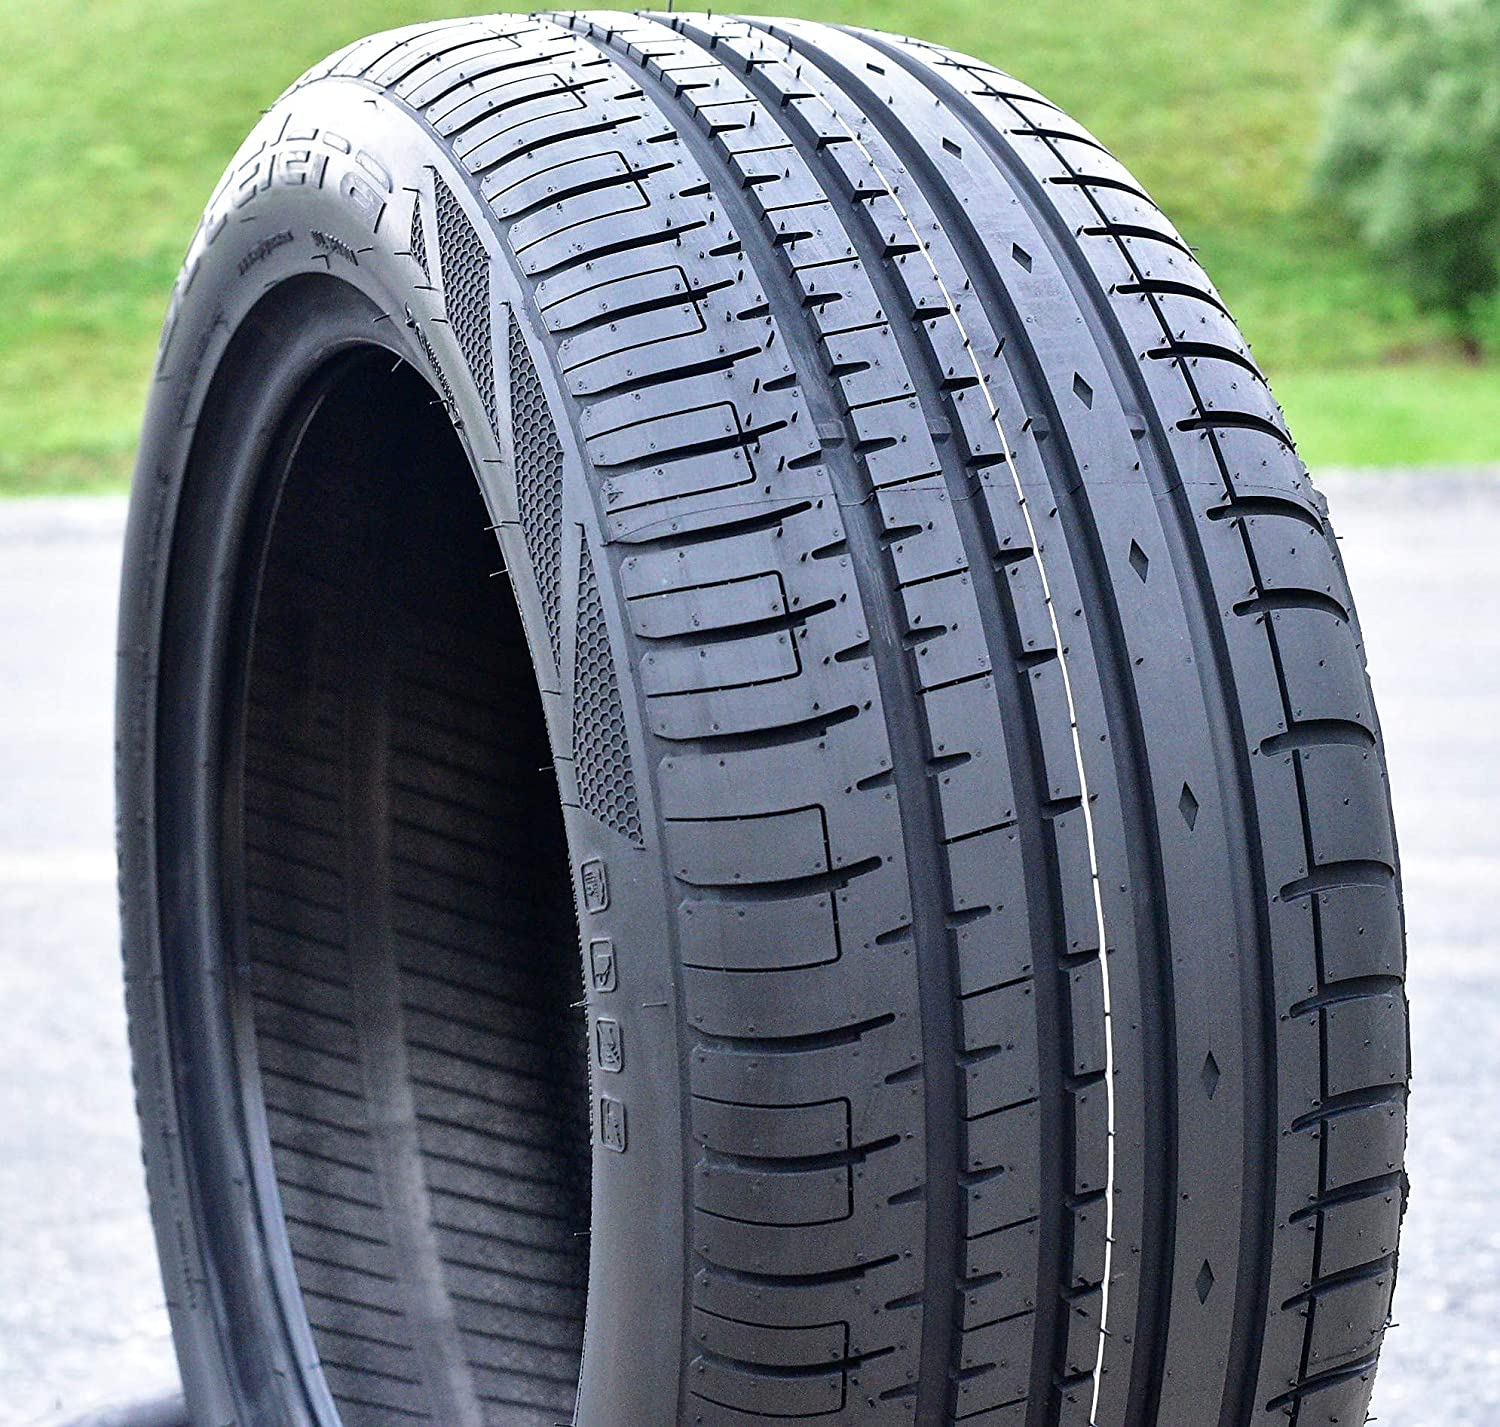 Accelera Phi-R All-Season Max 52% OFF 2021new shipping free High Tire-215 50R18 Radial Performance